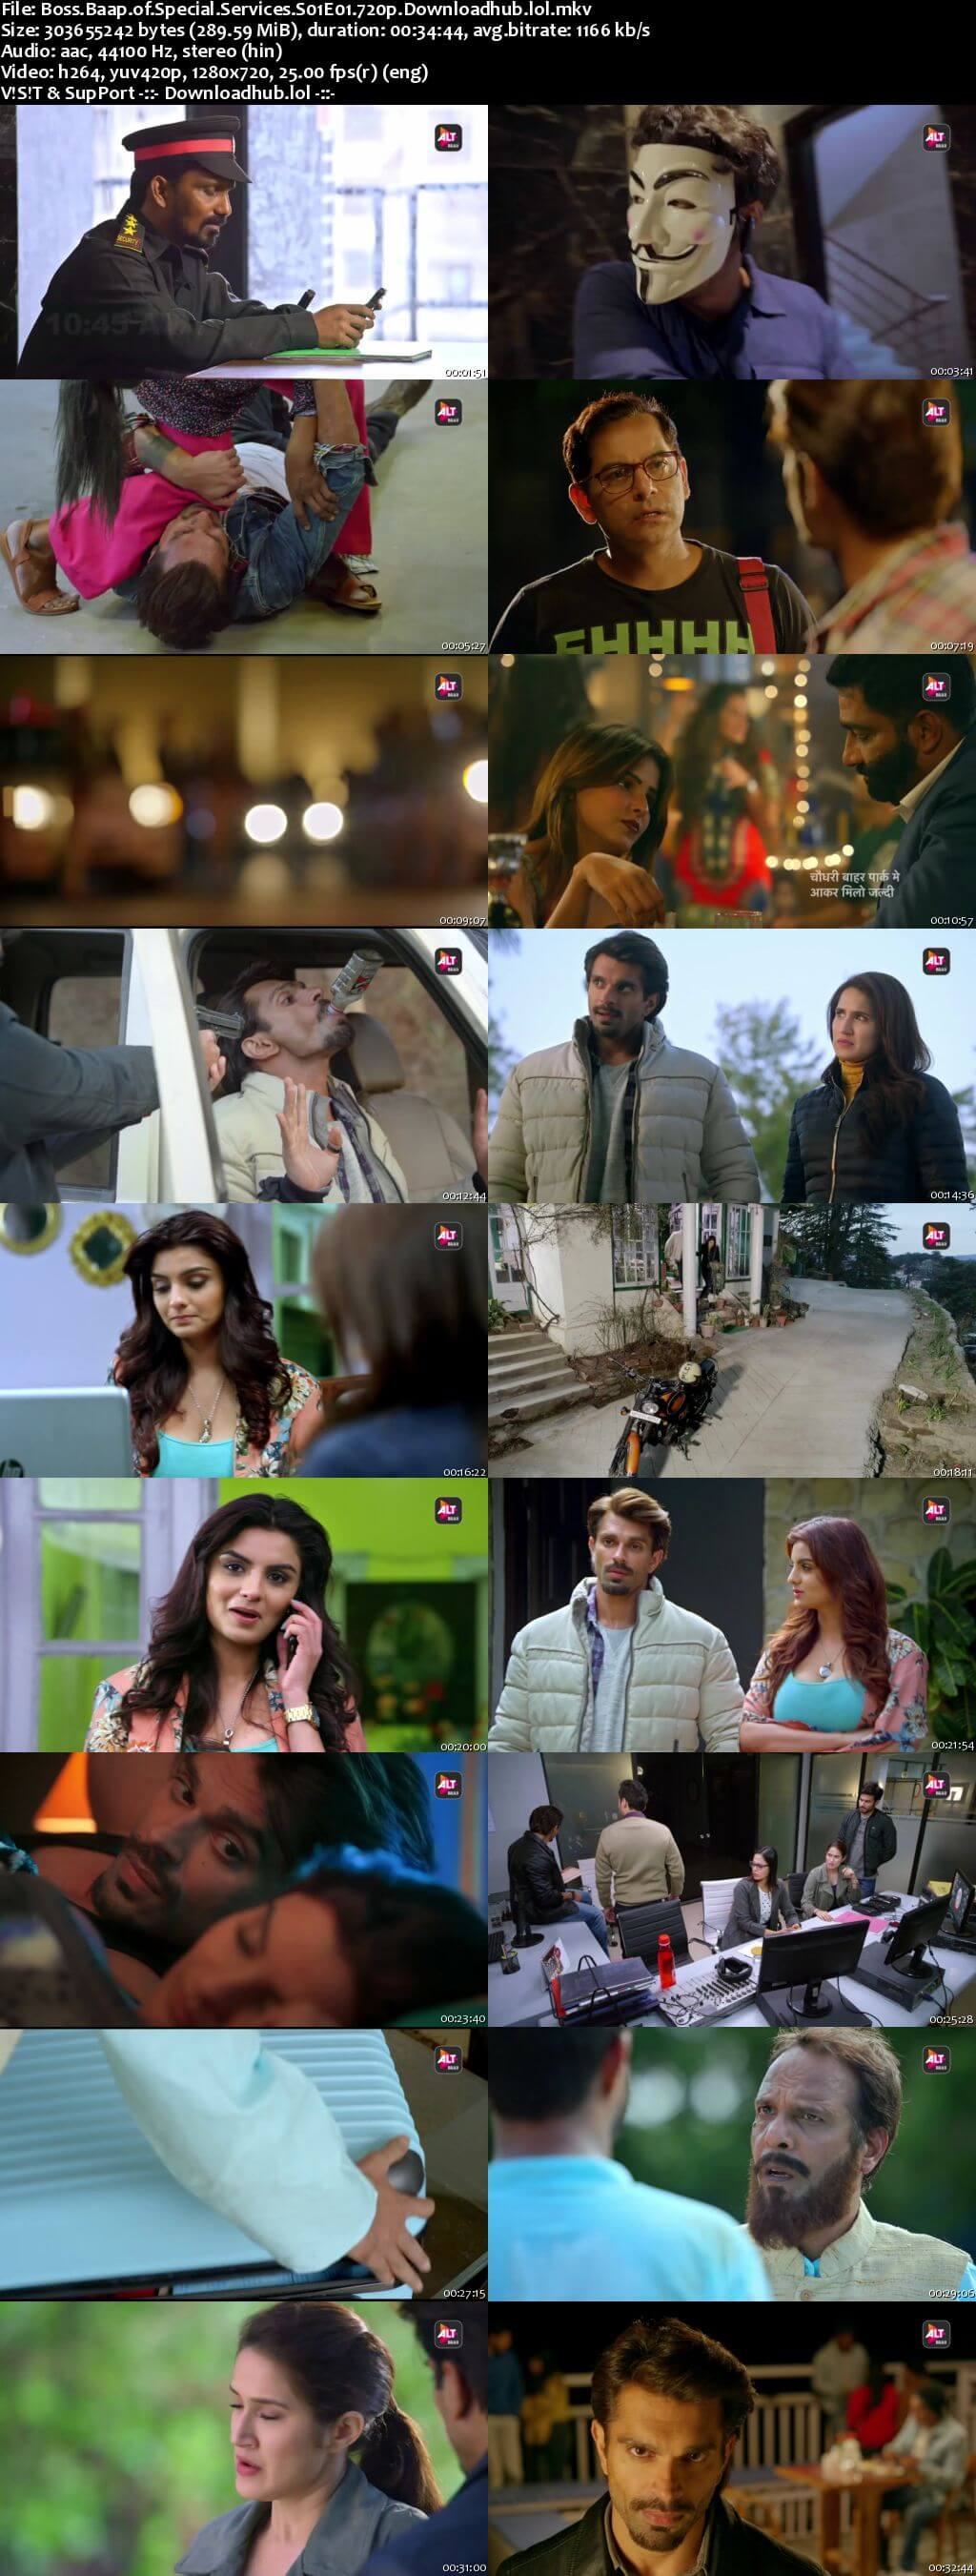 Boos Baap of Special Services Hindi Season 01 Complete 720p HDRip x264